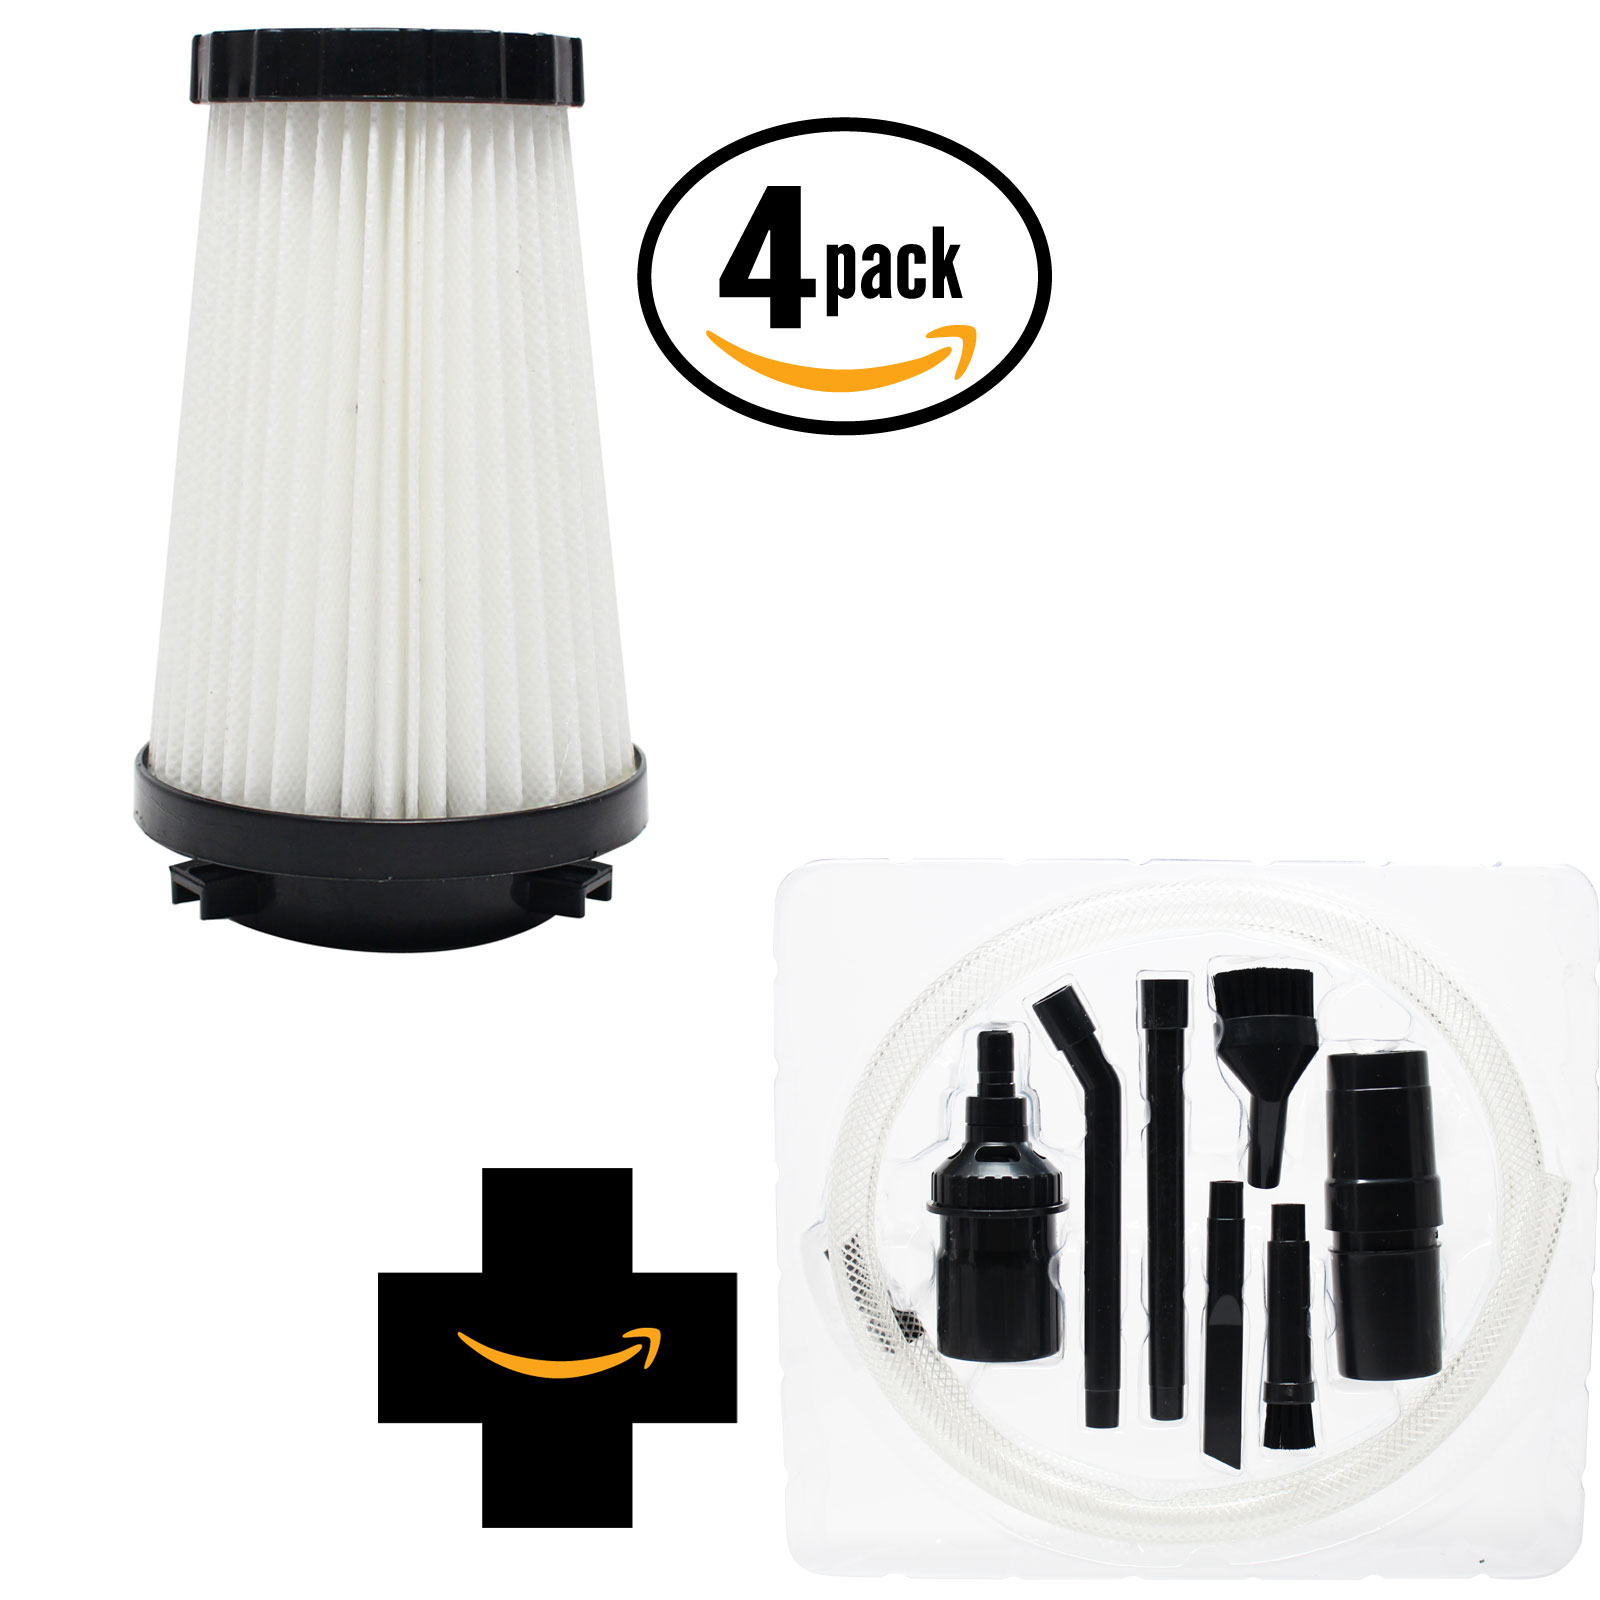 4-Pack Replacement Dirt Devil SD20505 Vacuum HEPA Filter with 7-Piece Micro Vacuum Attachment Kit - Compatible Dirt Devil 3SFA11500X, F2 HEPA Filter